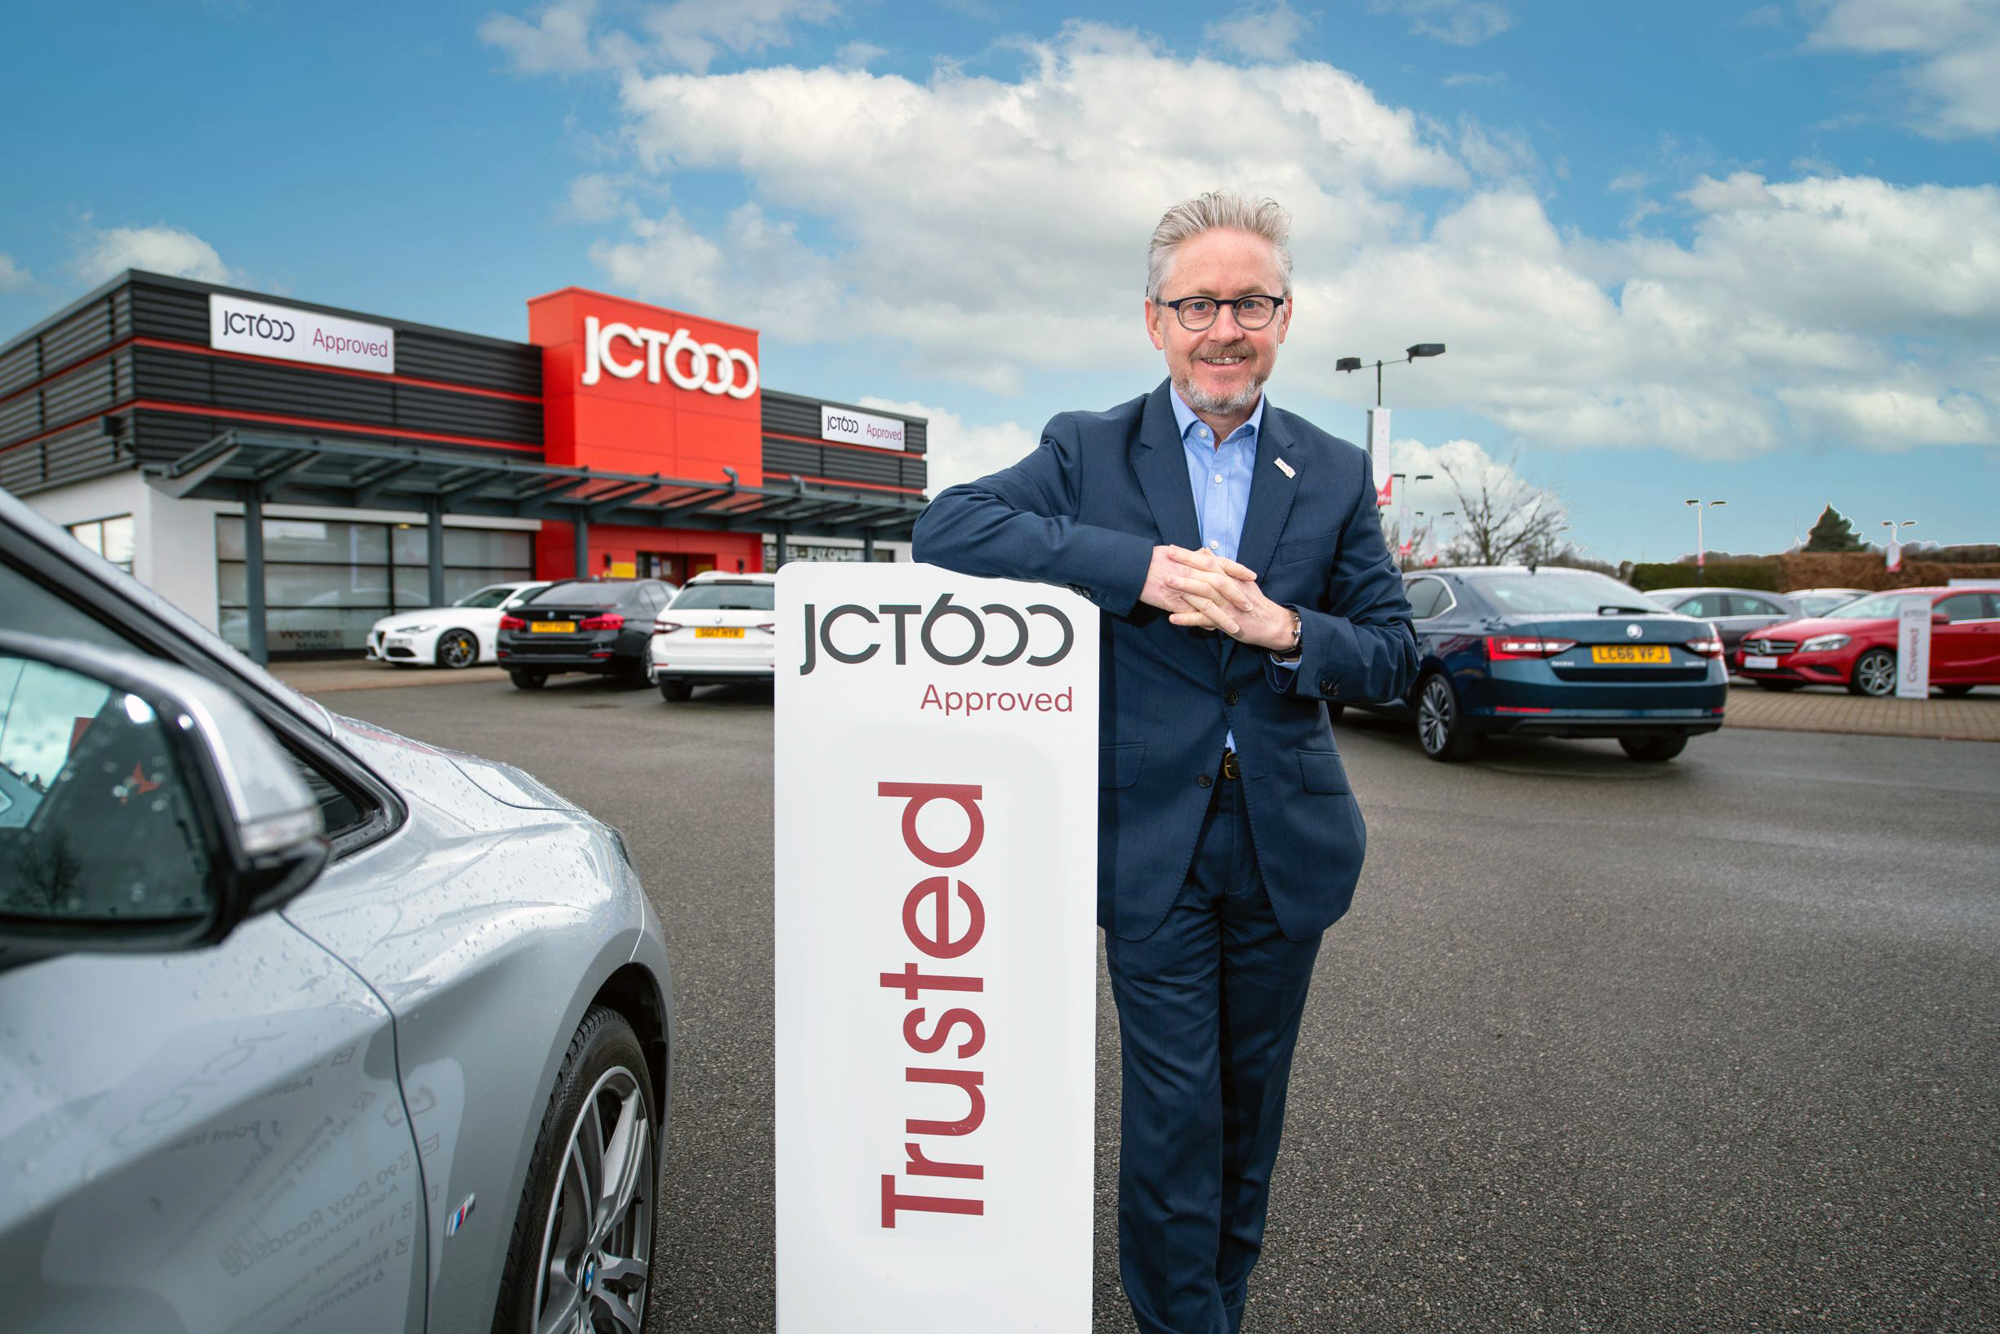 Yorkshire's Largest Family Business Celebrates Its 75th Anniversary And The Sale Of Over A Million Vehicles